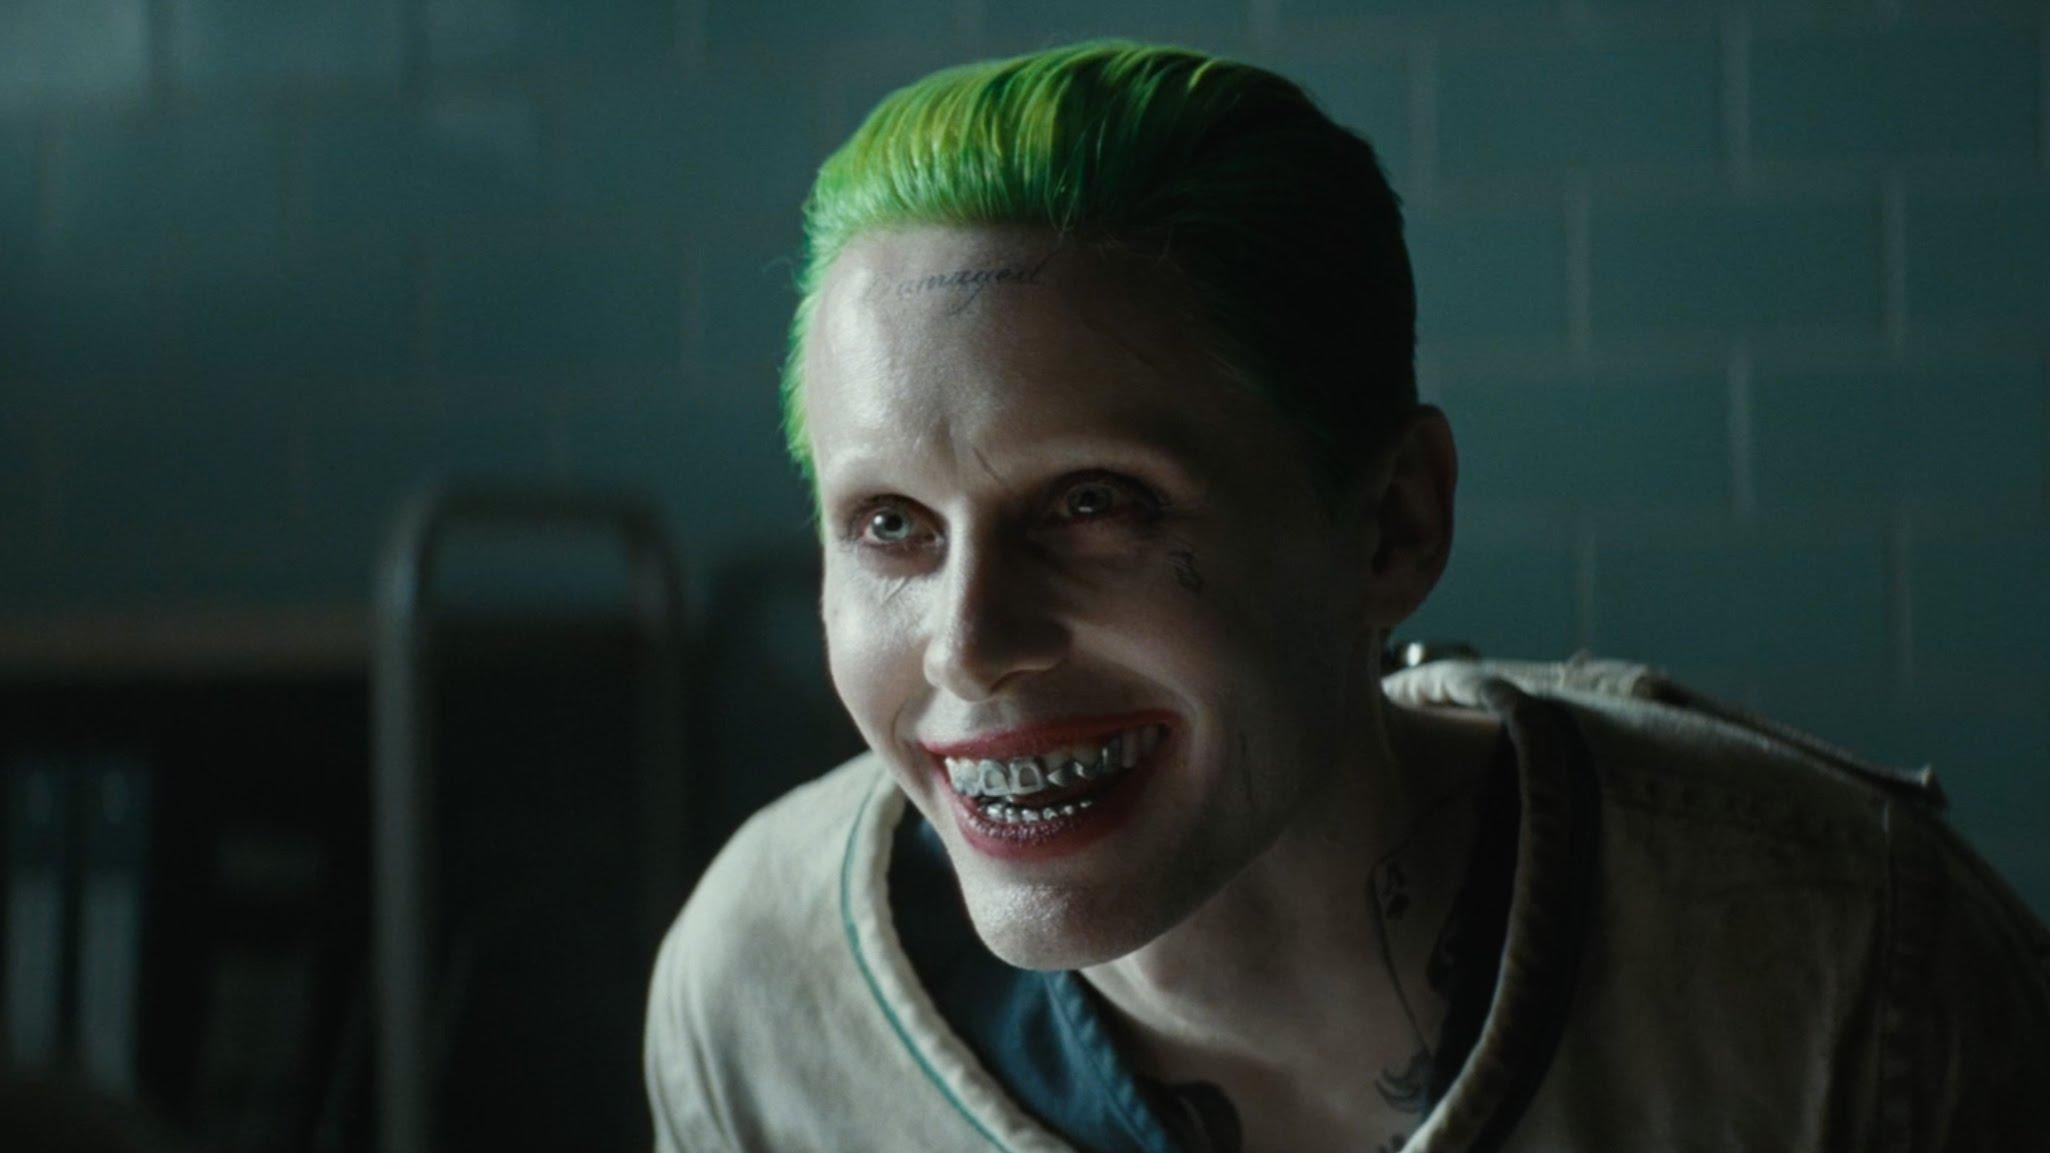 Suicide Squad actor Jared Leto reveals just how deep he went as the Joker